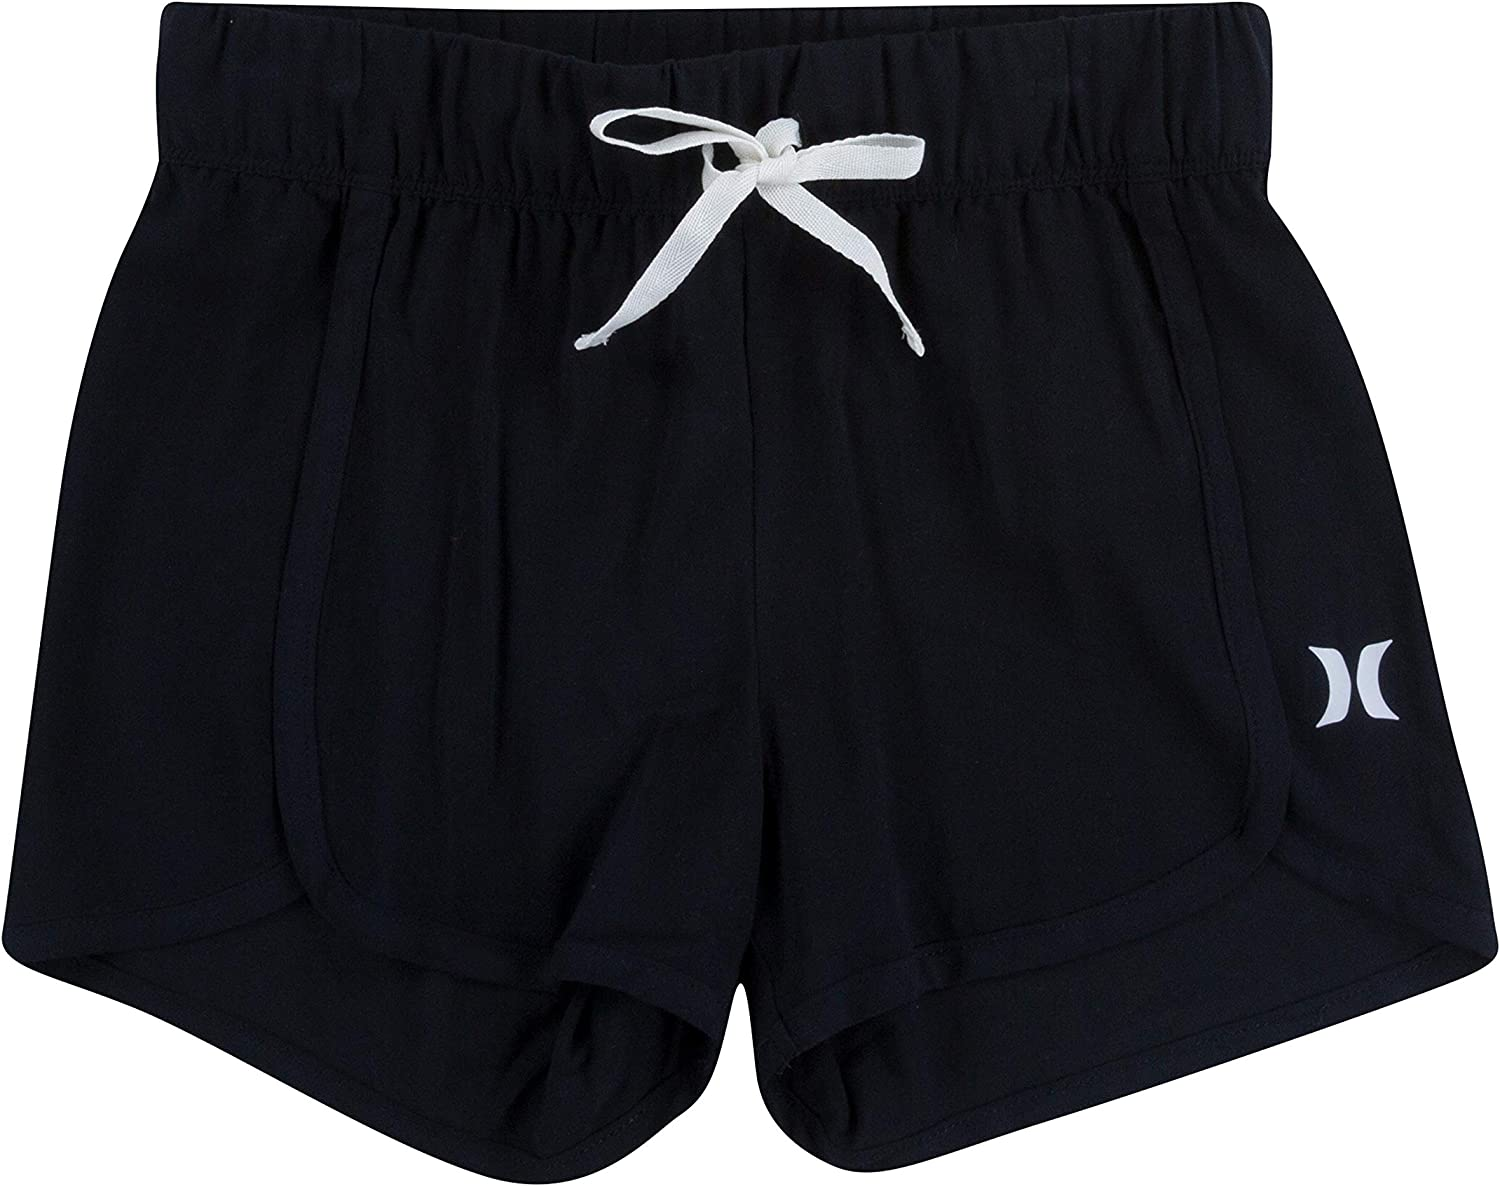 Rare Hurley Girls High-Waisted Credence Shorts